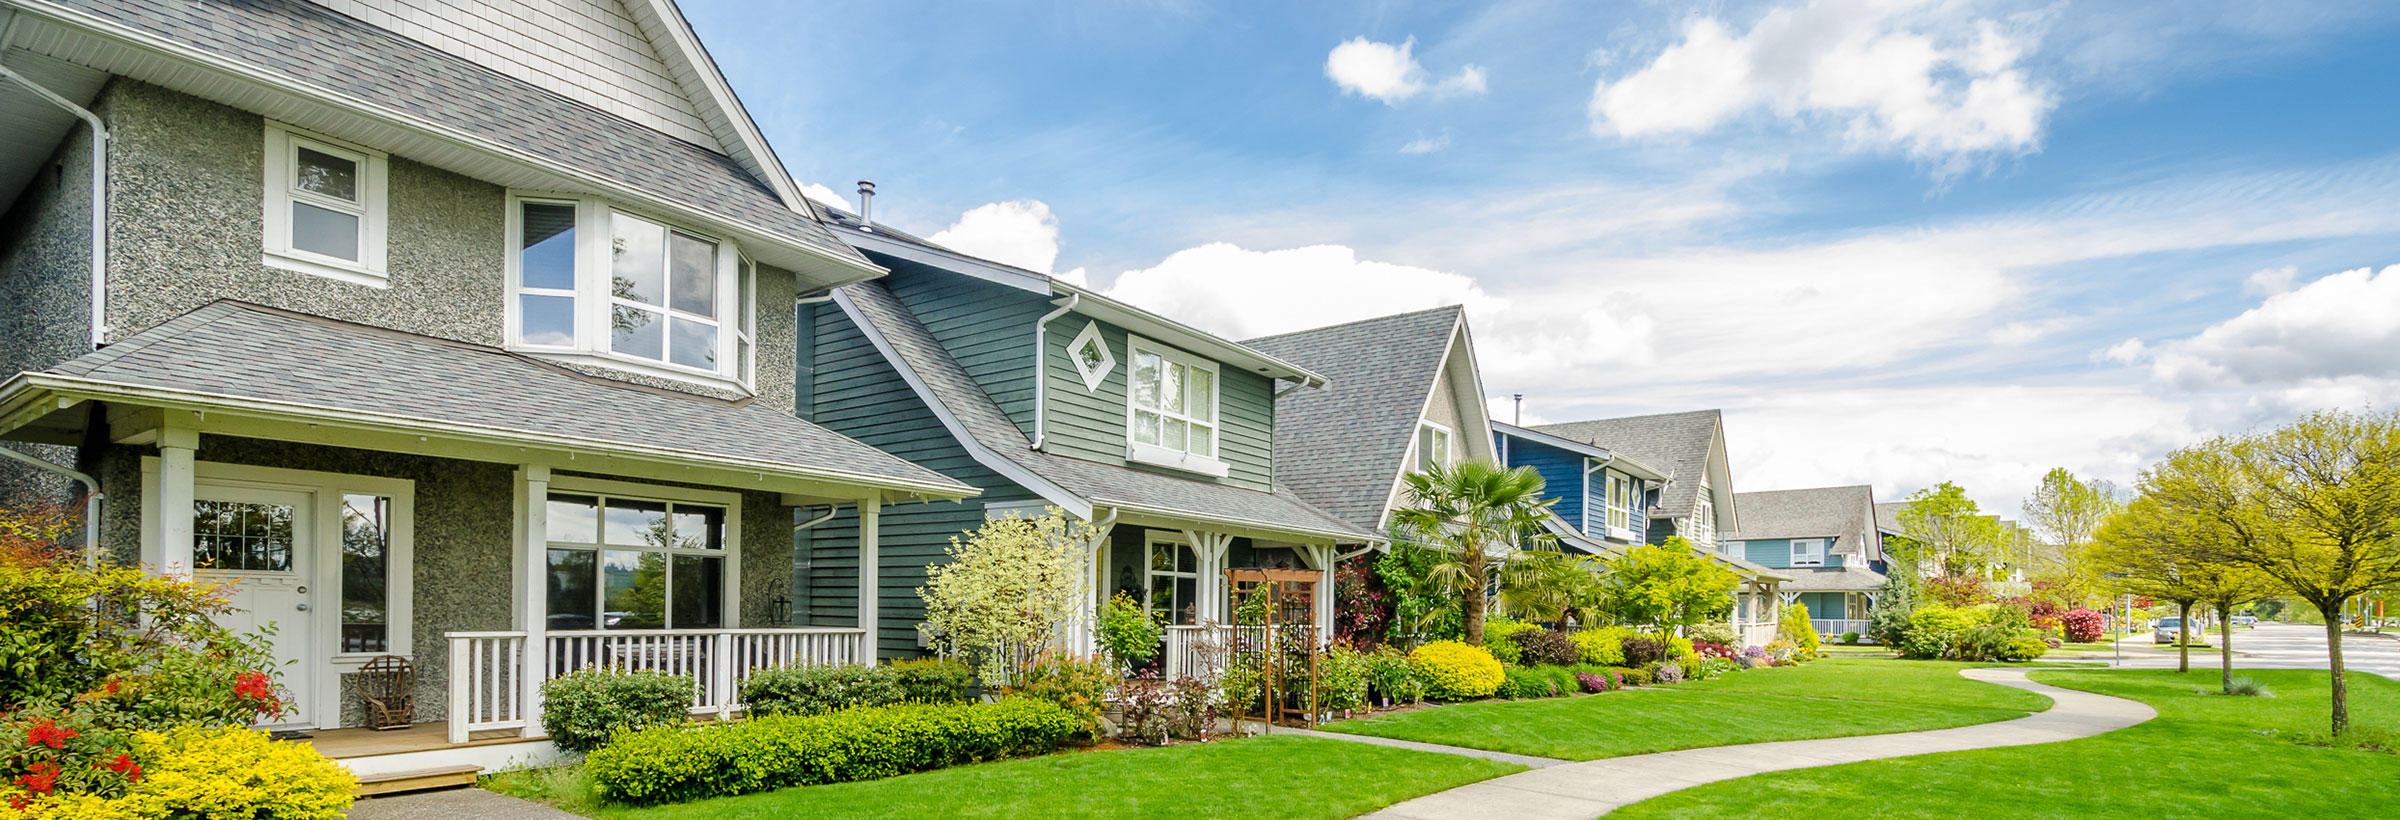 how to successfully live under a homeowners association